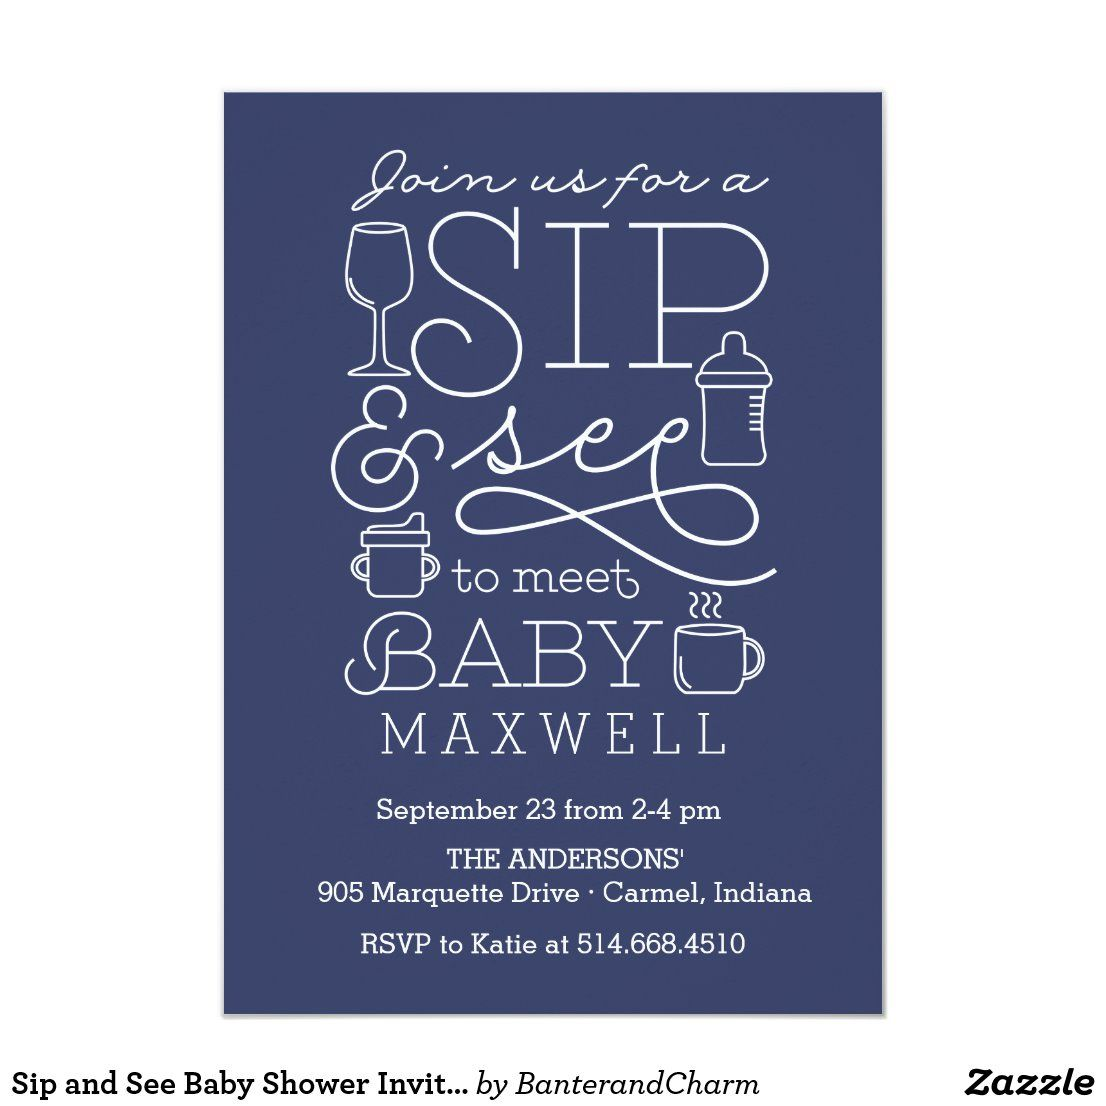 Sip and See Baby Shower Invitations   Zazzle.com in 2020   Baby boy sip and  see, Sip and see invitations, Sip and see